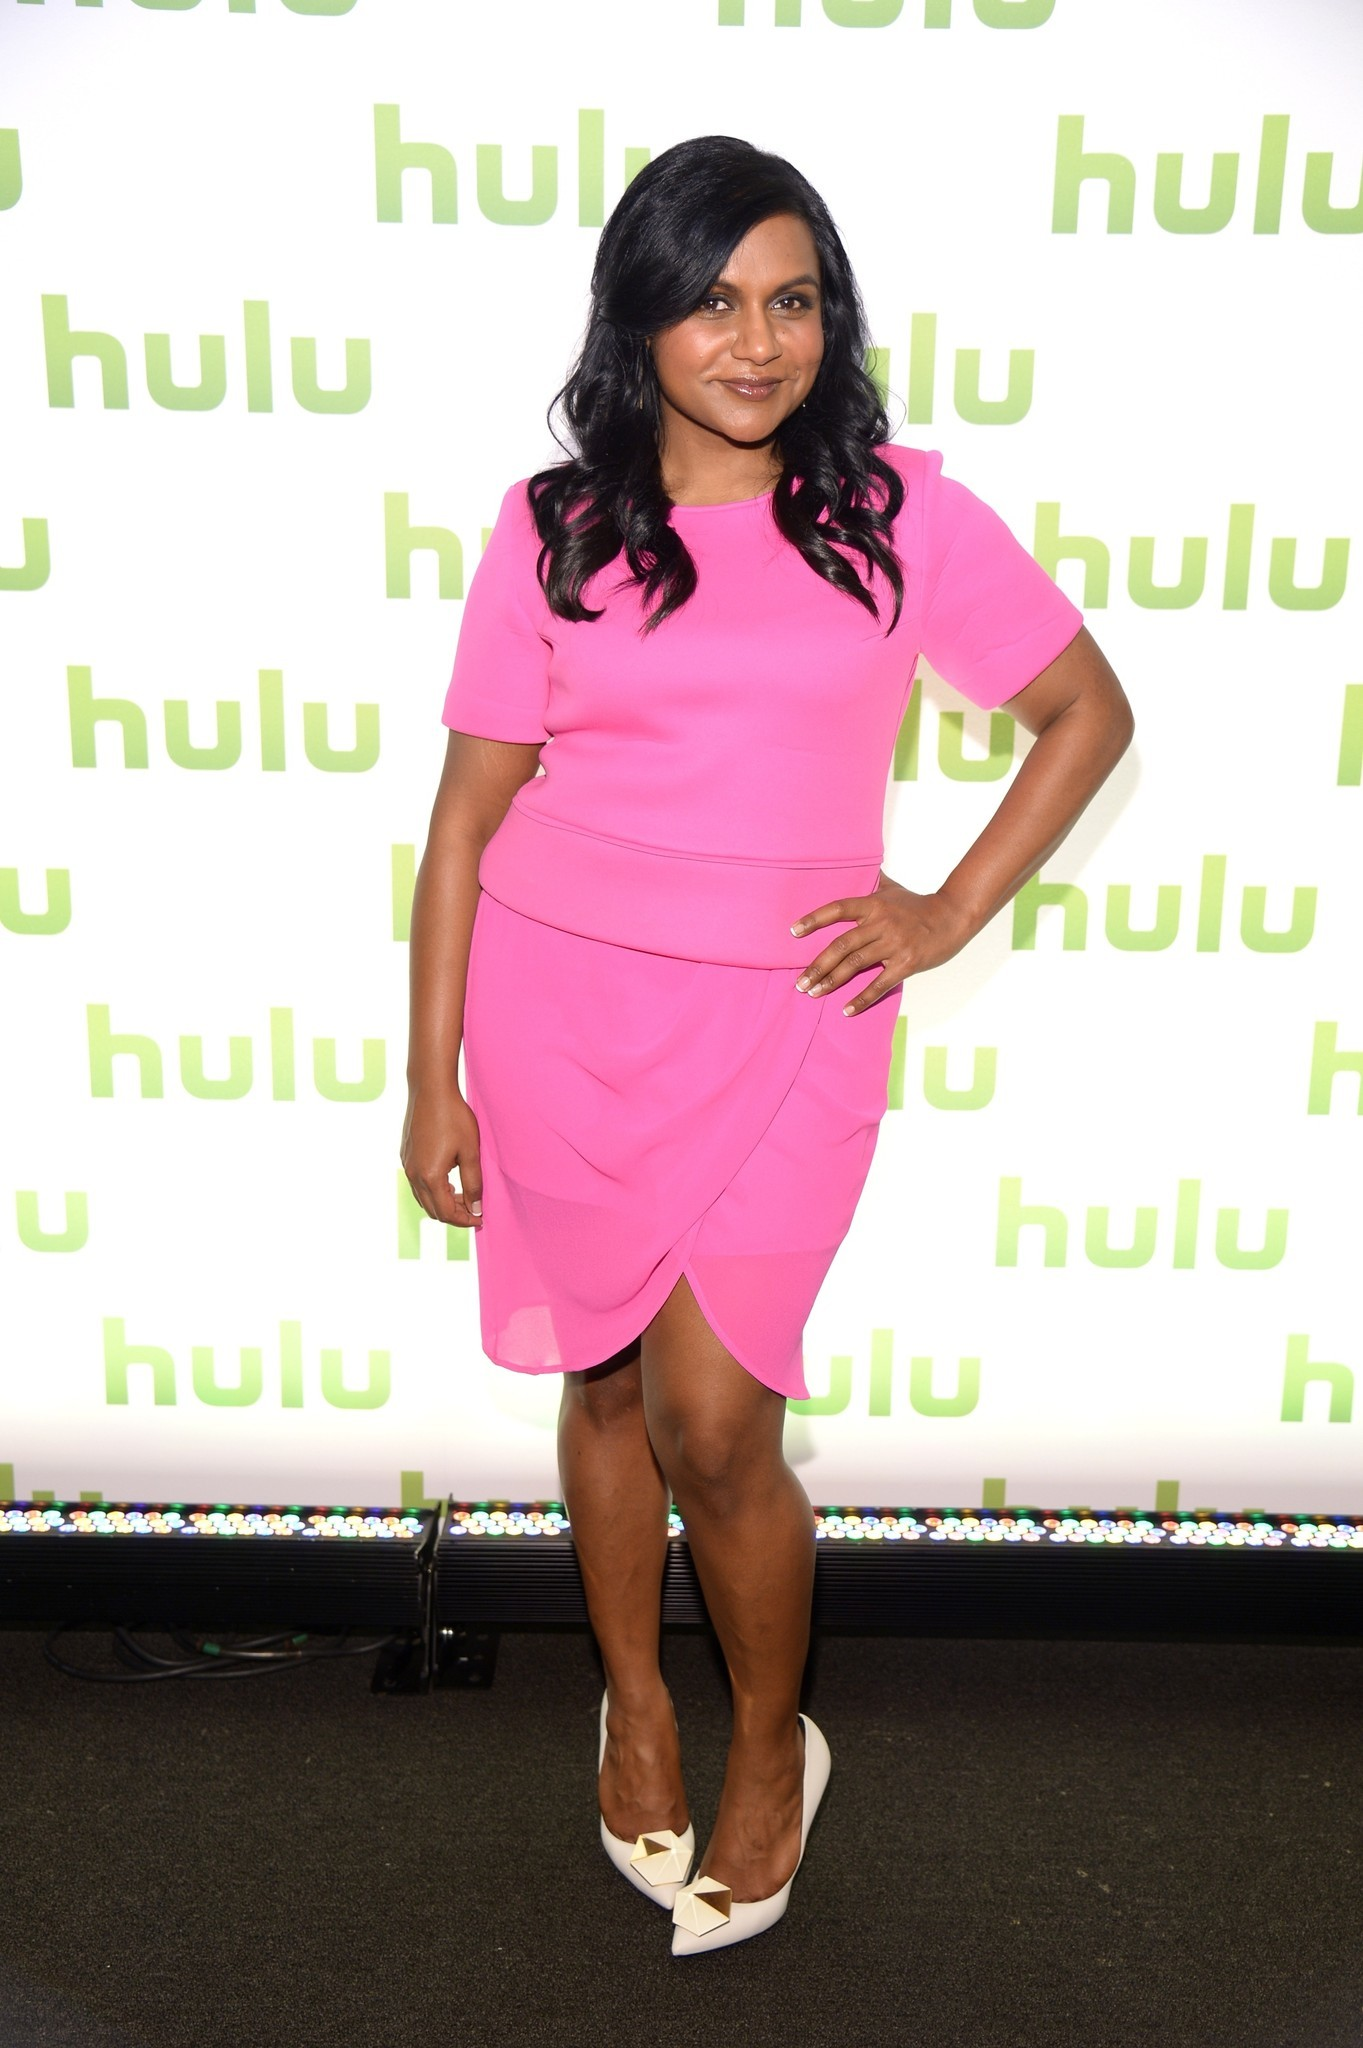 mindy kaling reveals she u0026 39 s writing a new book